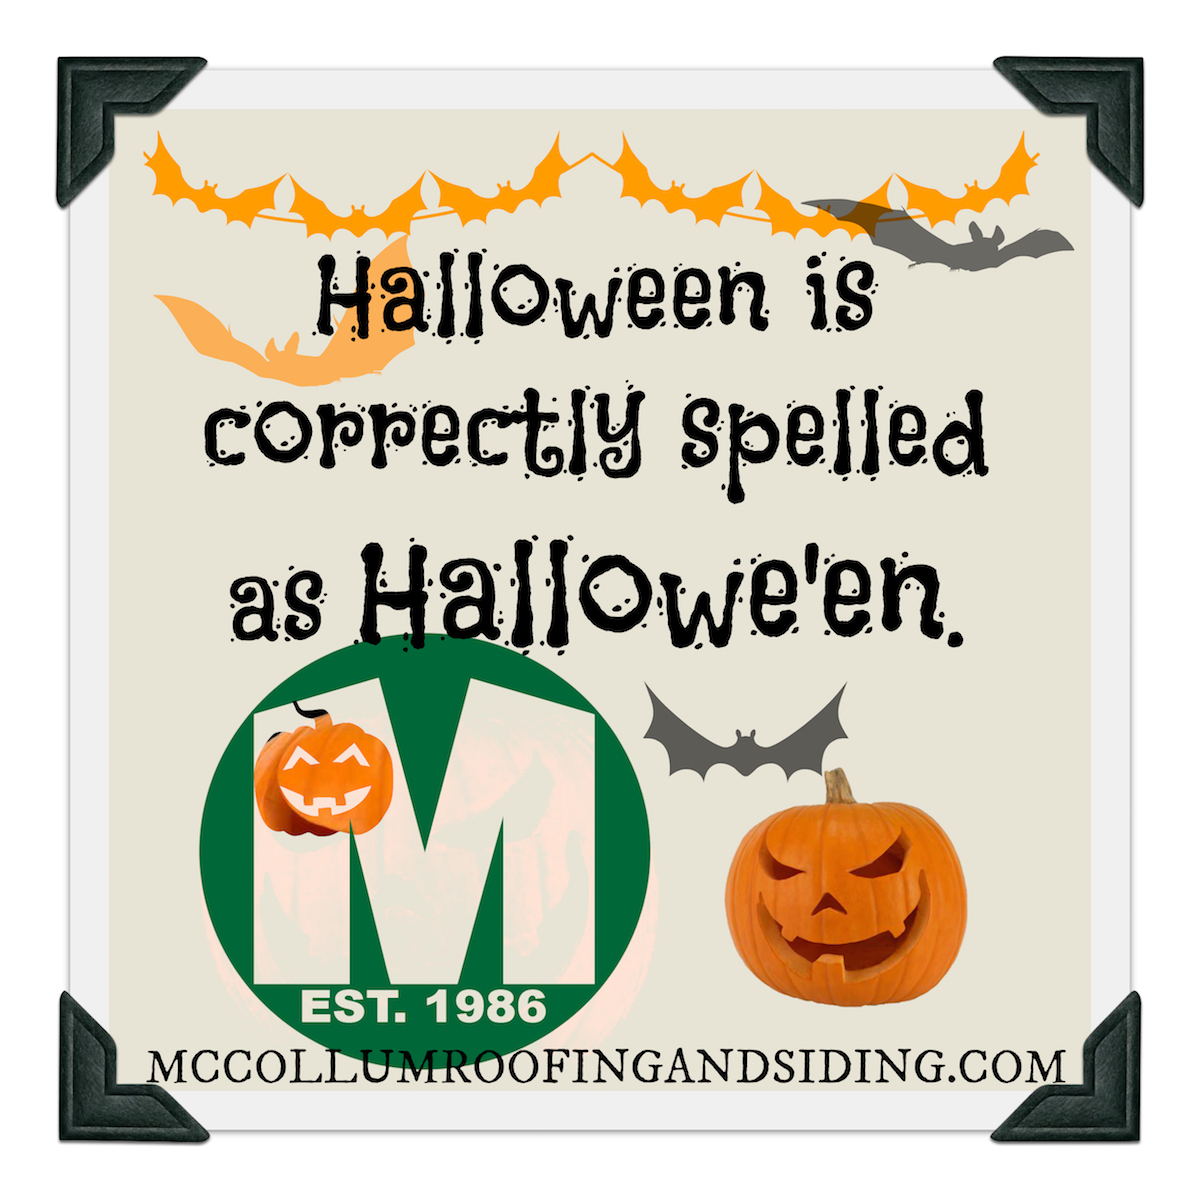 Discover Halloween History & Lore with McCollum Roofing and Siding, a West Orange NJ Family Owned & Operated Business